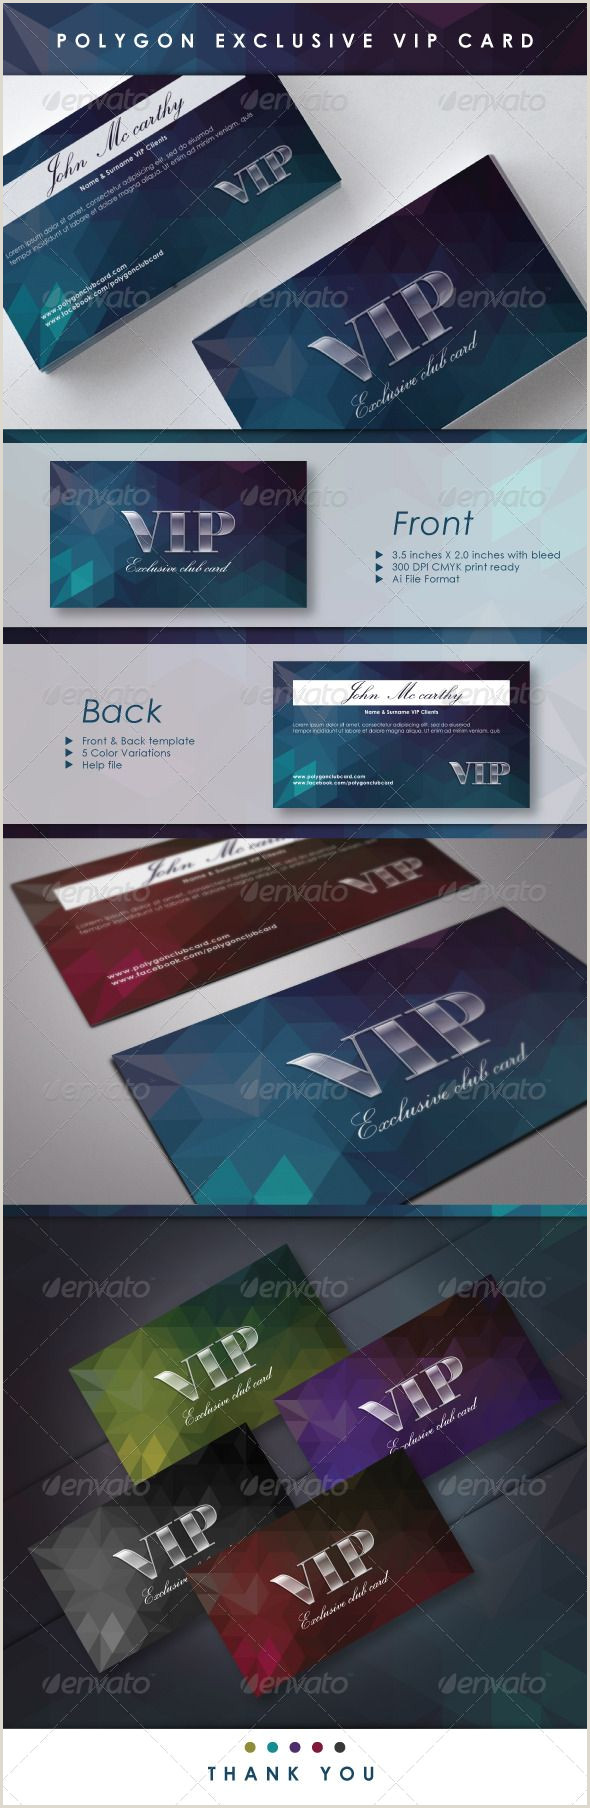 Back Of Business Card Ideas Polygon Exclusive Vip Card Graphicriver